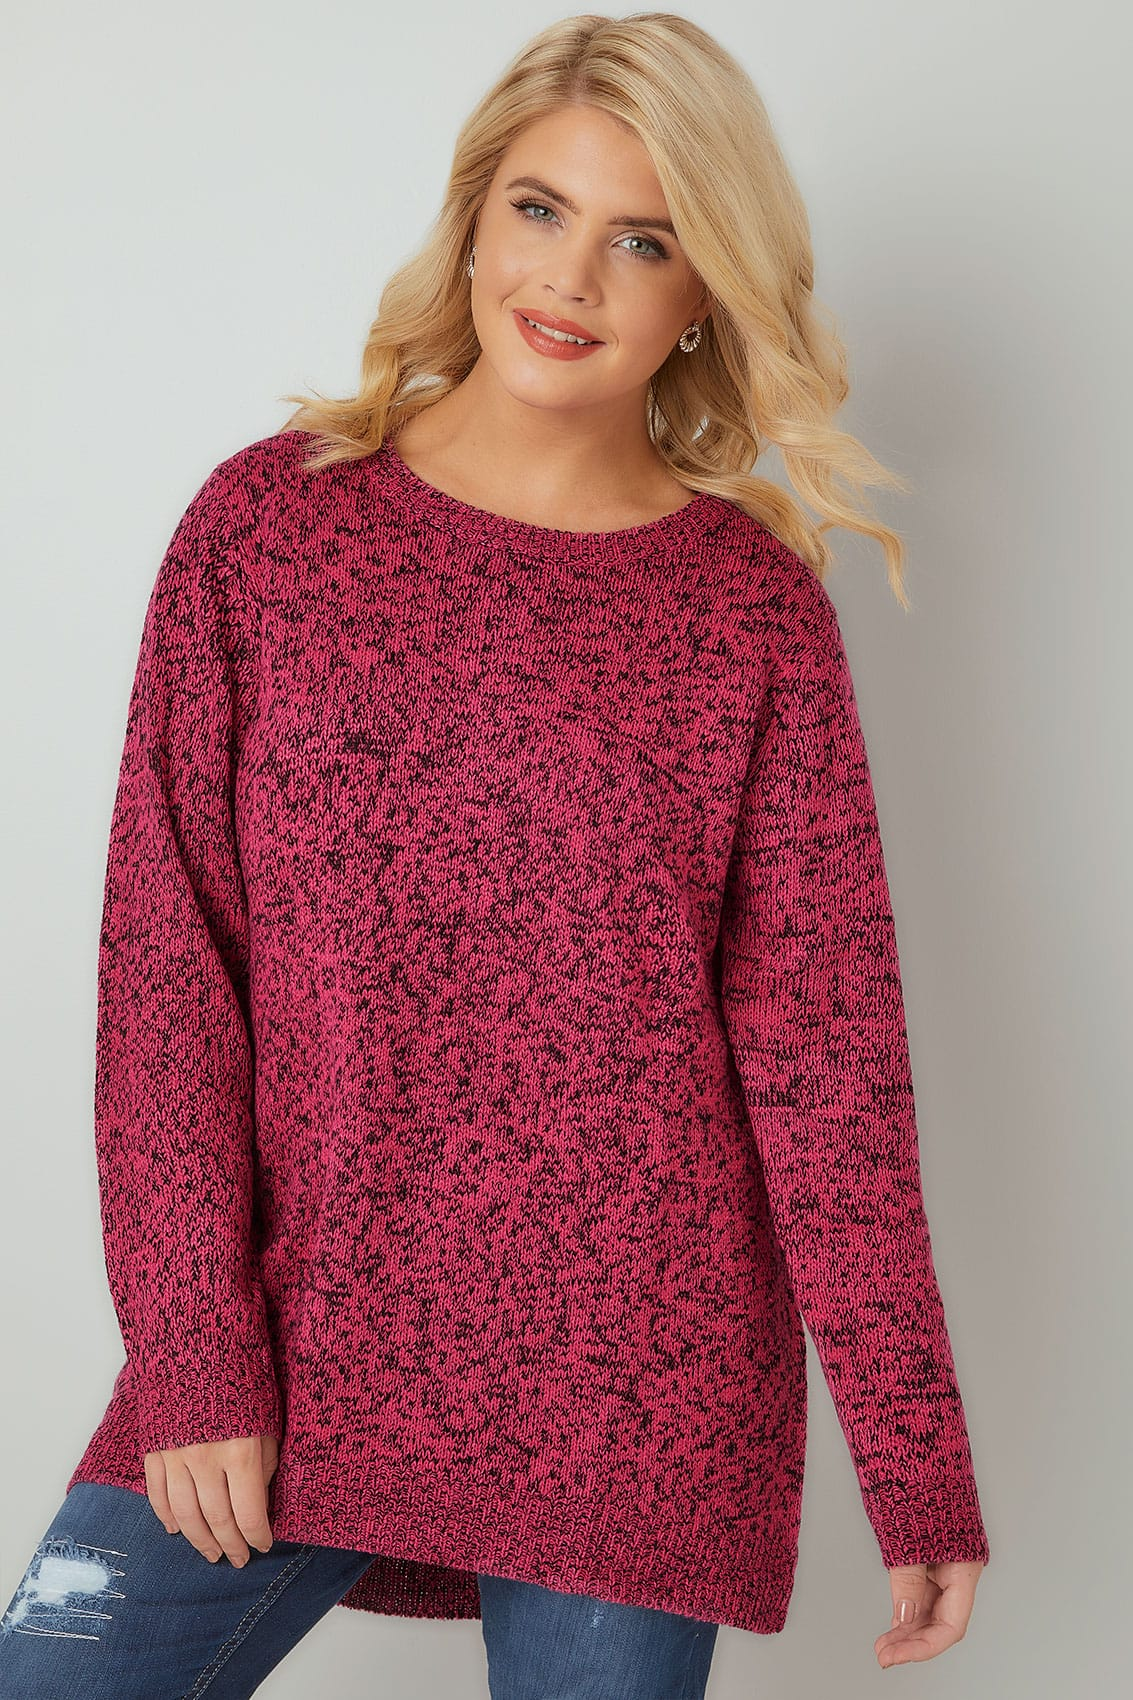 Bright Pink Textured Jumper With Dipped Hem Plus Size 16